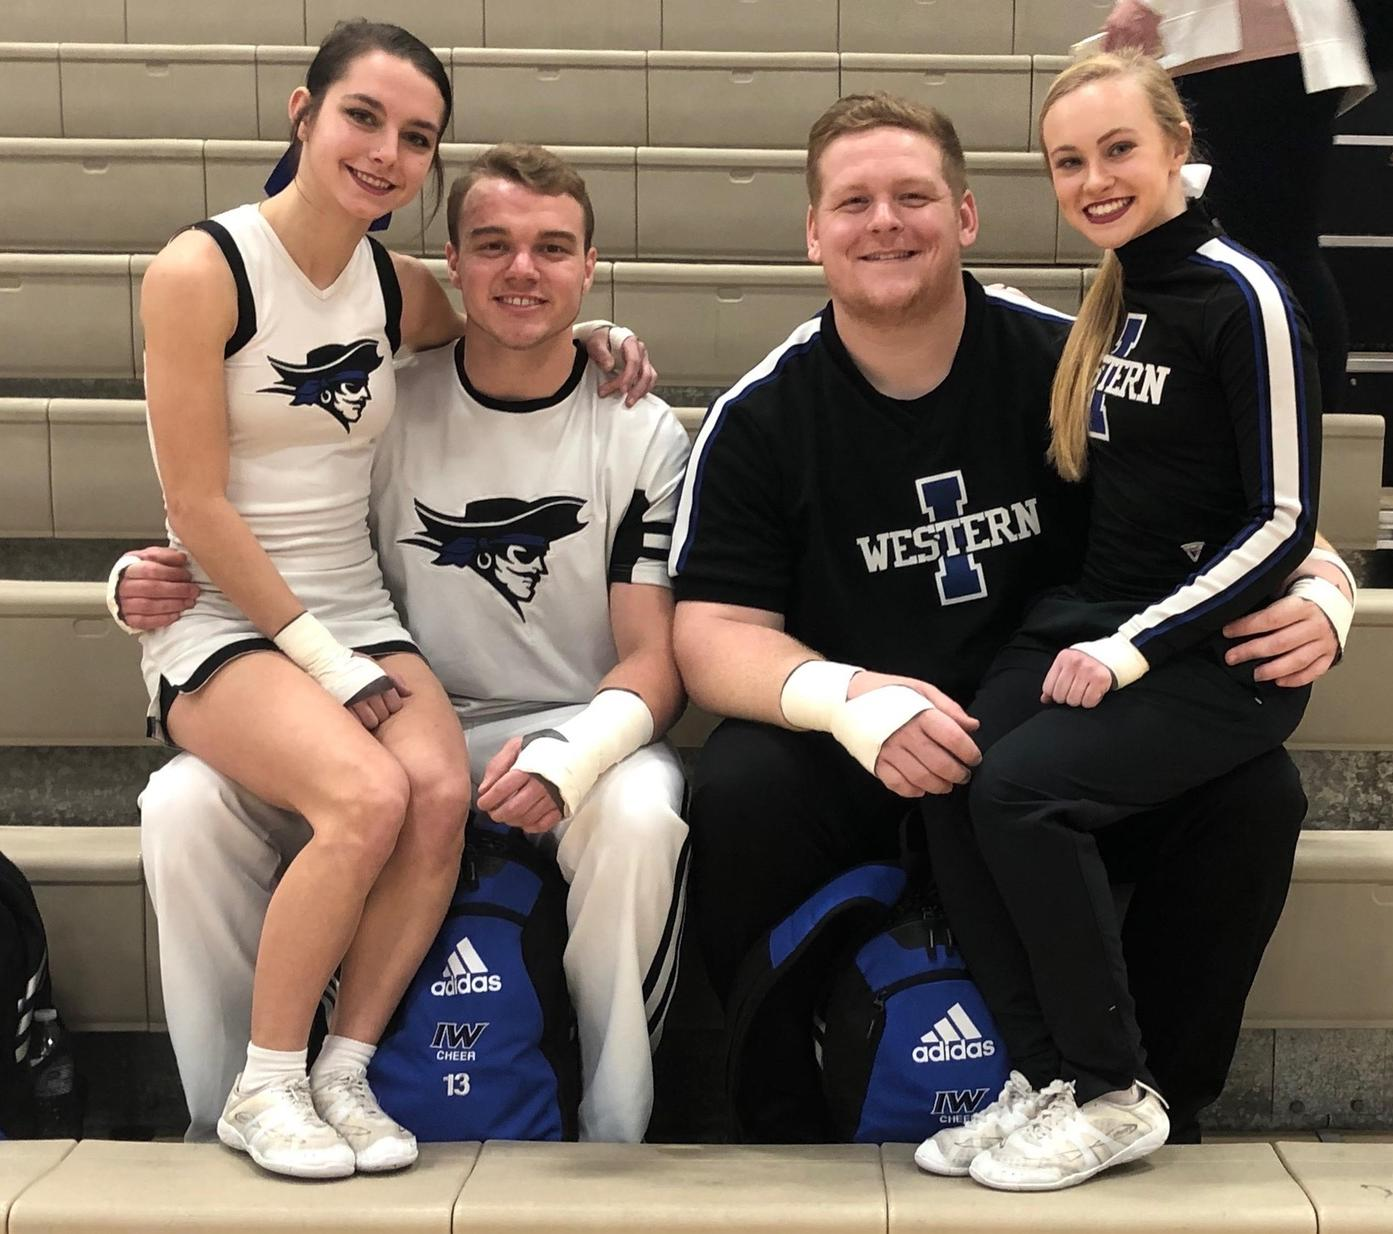 Iowa Western Cheer displays skills at local competition